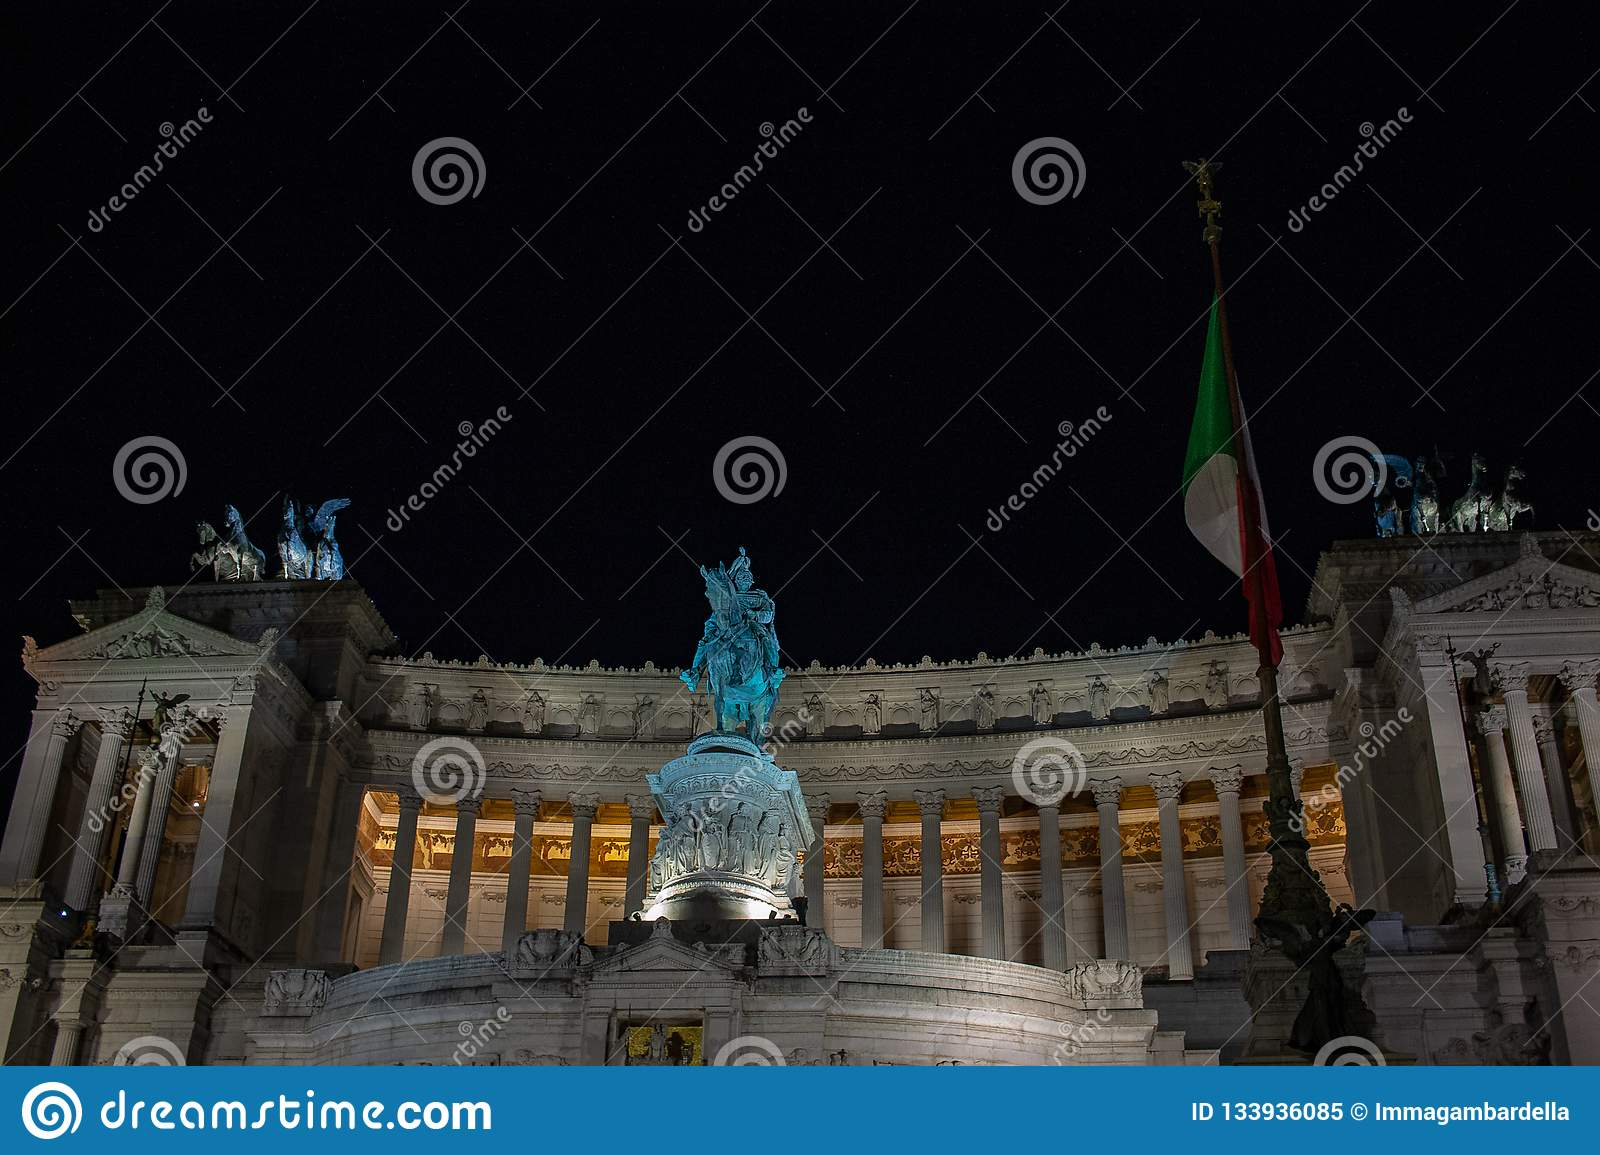 Lighting of the tree of Rome, in Piazza Venezia. Lights and red and yellow balls decorate the tree.